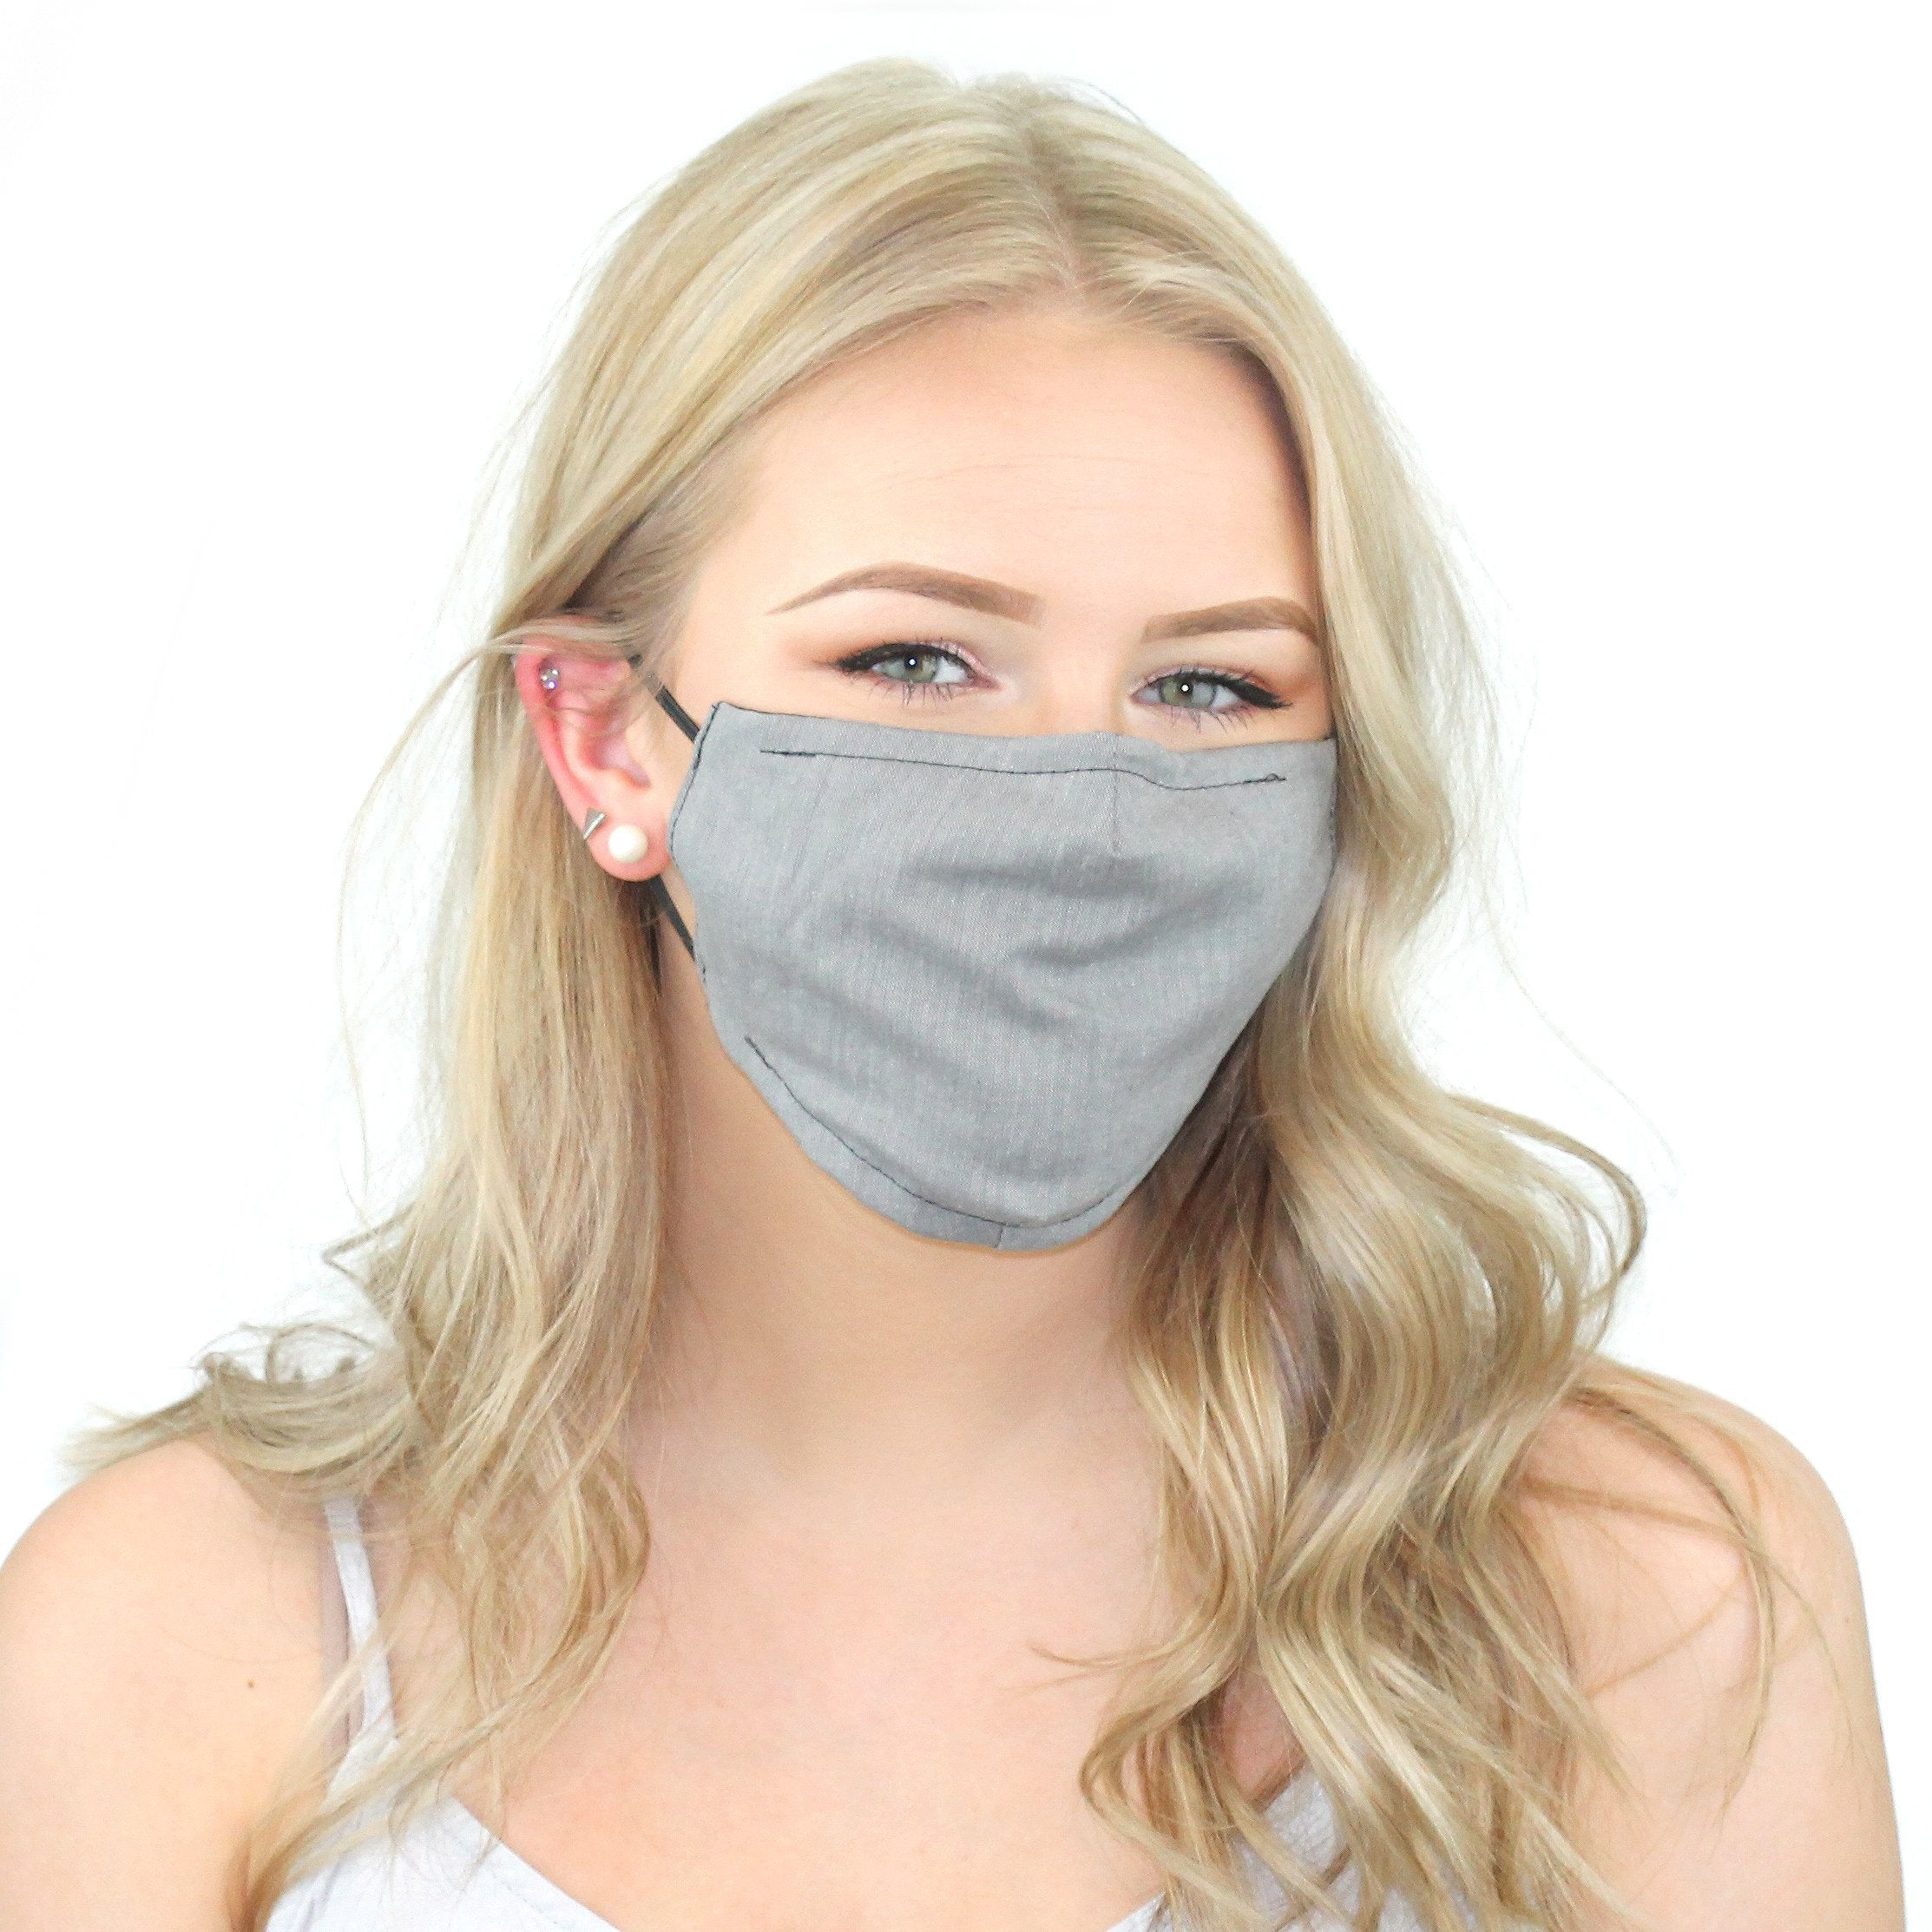 Reusable Cloth Face Mask With Pm2.5 Filter And Nose Bridge Grey Beauty & Health